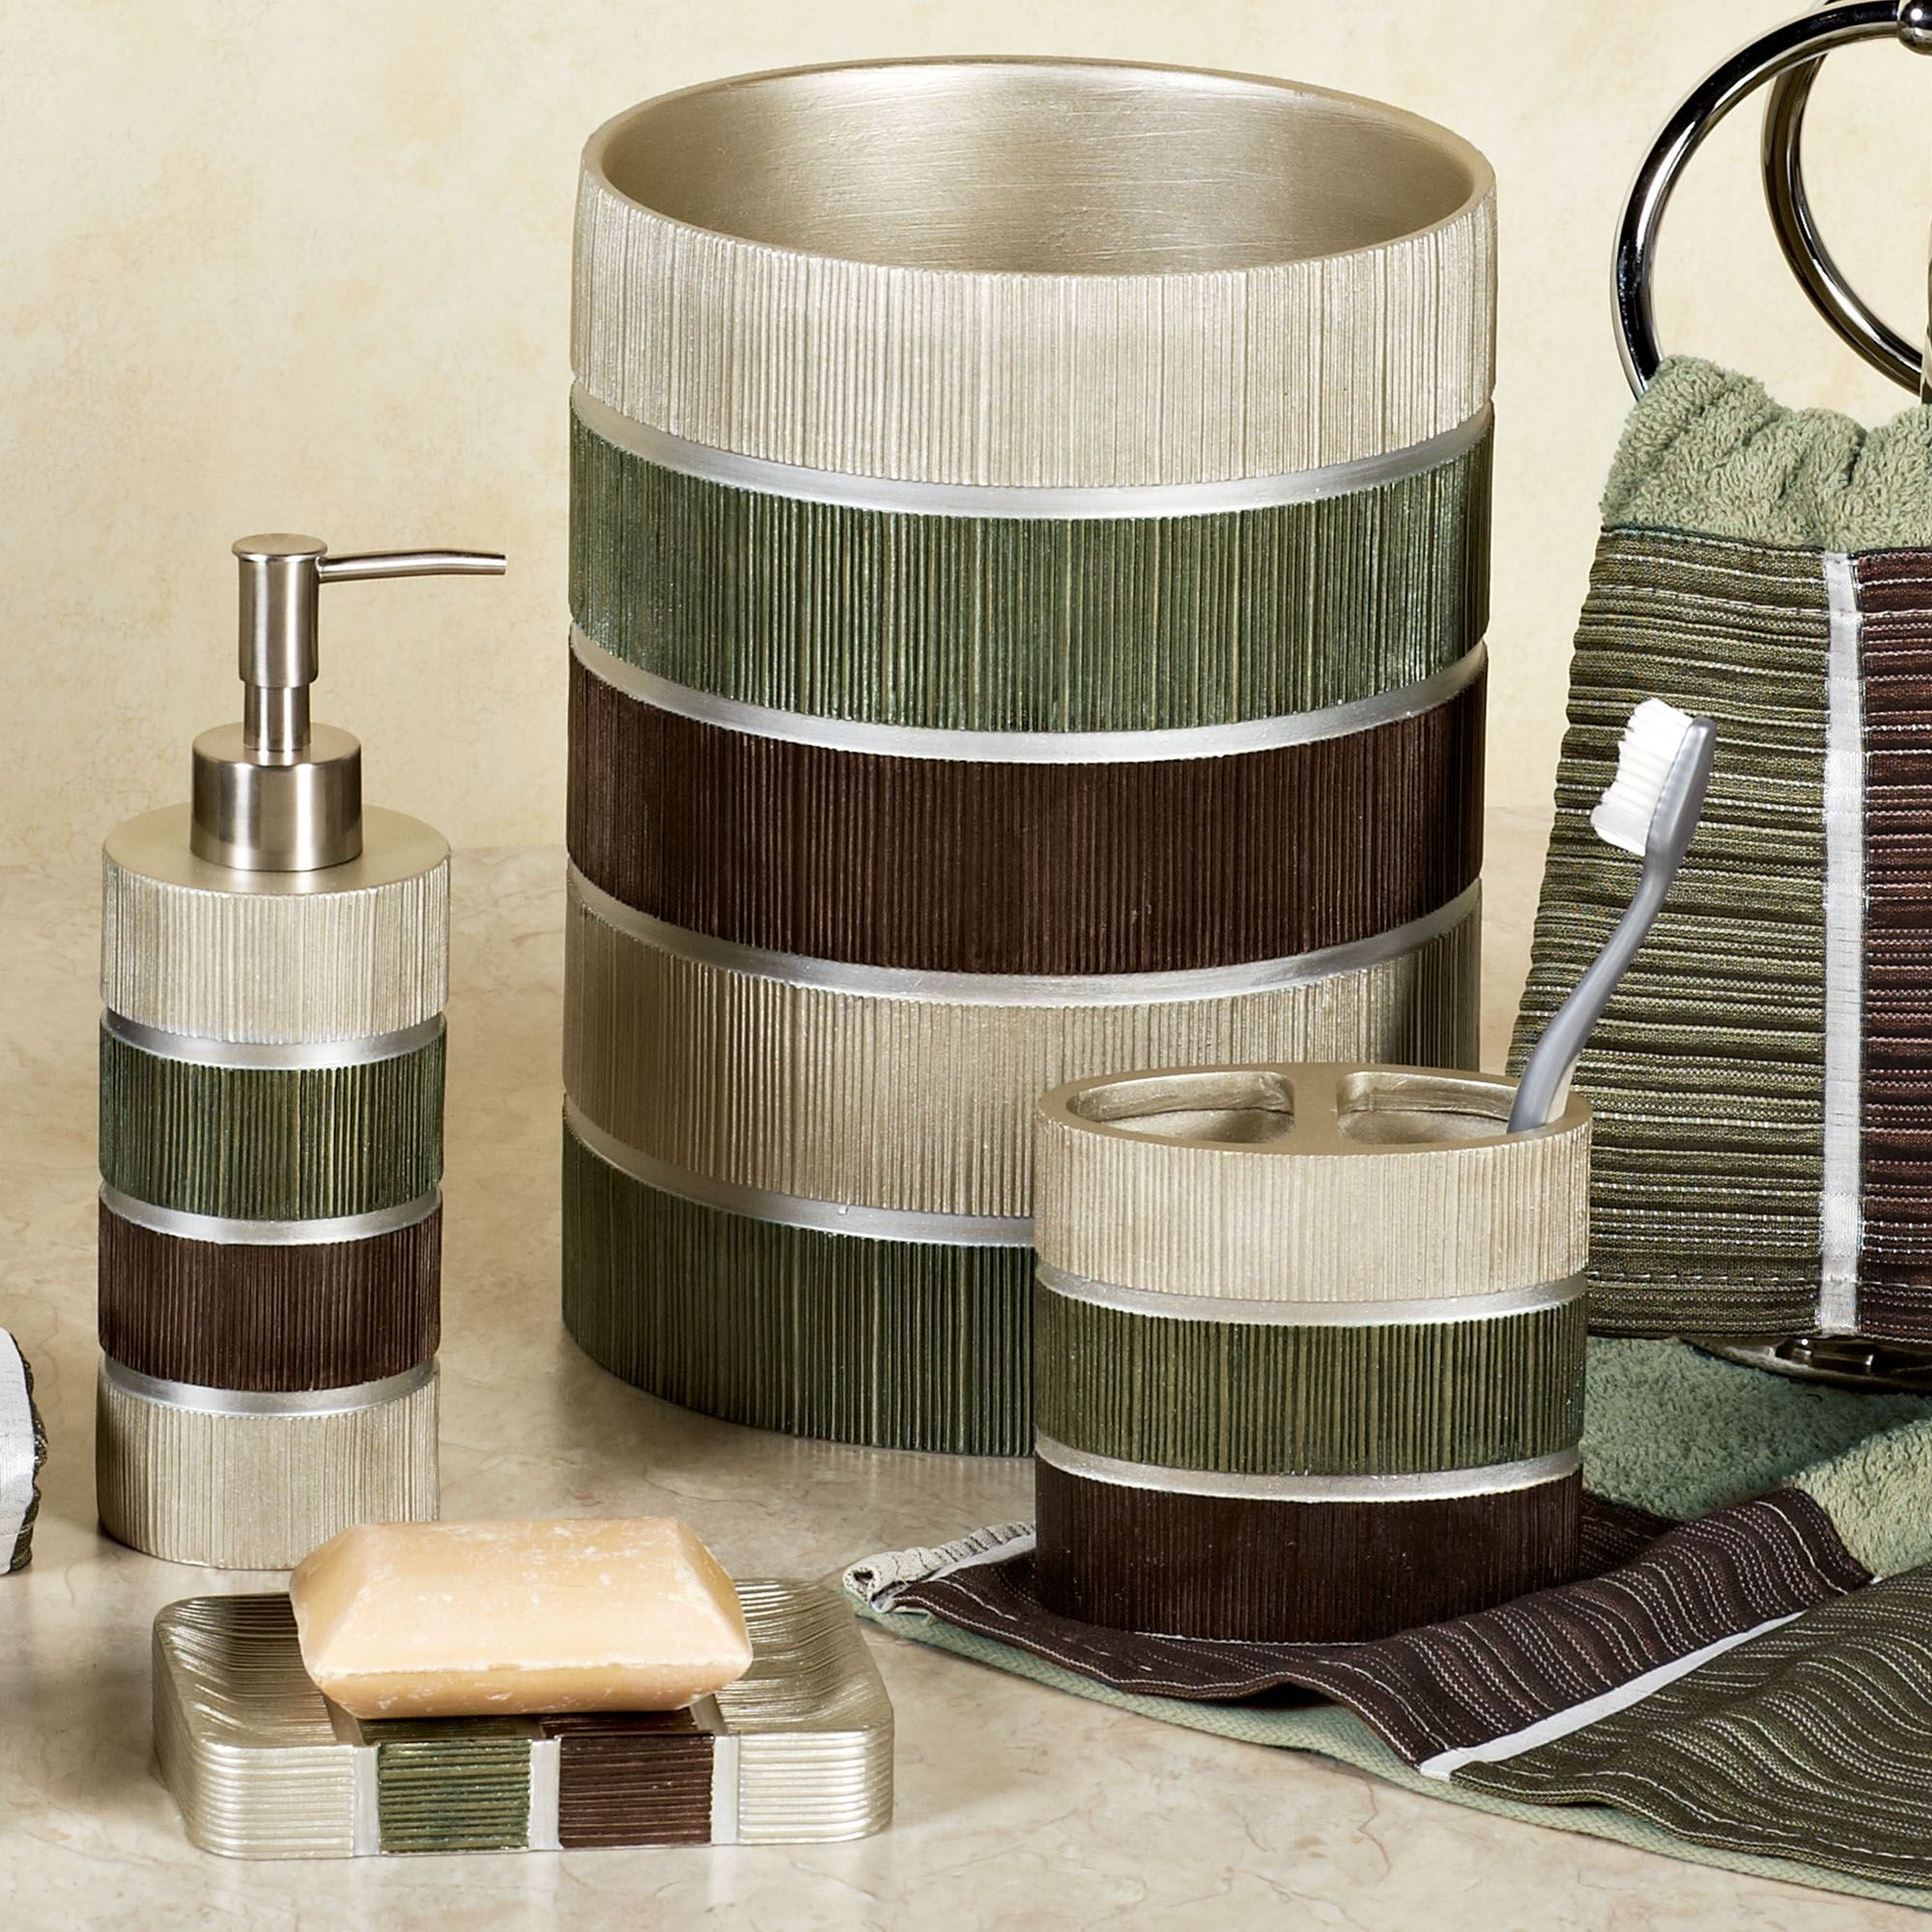 Modern line sage striped bath accessories for Brown and white bathroom accessories